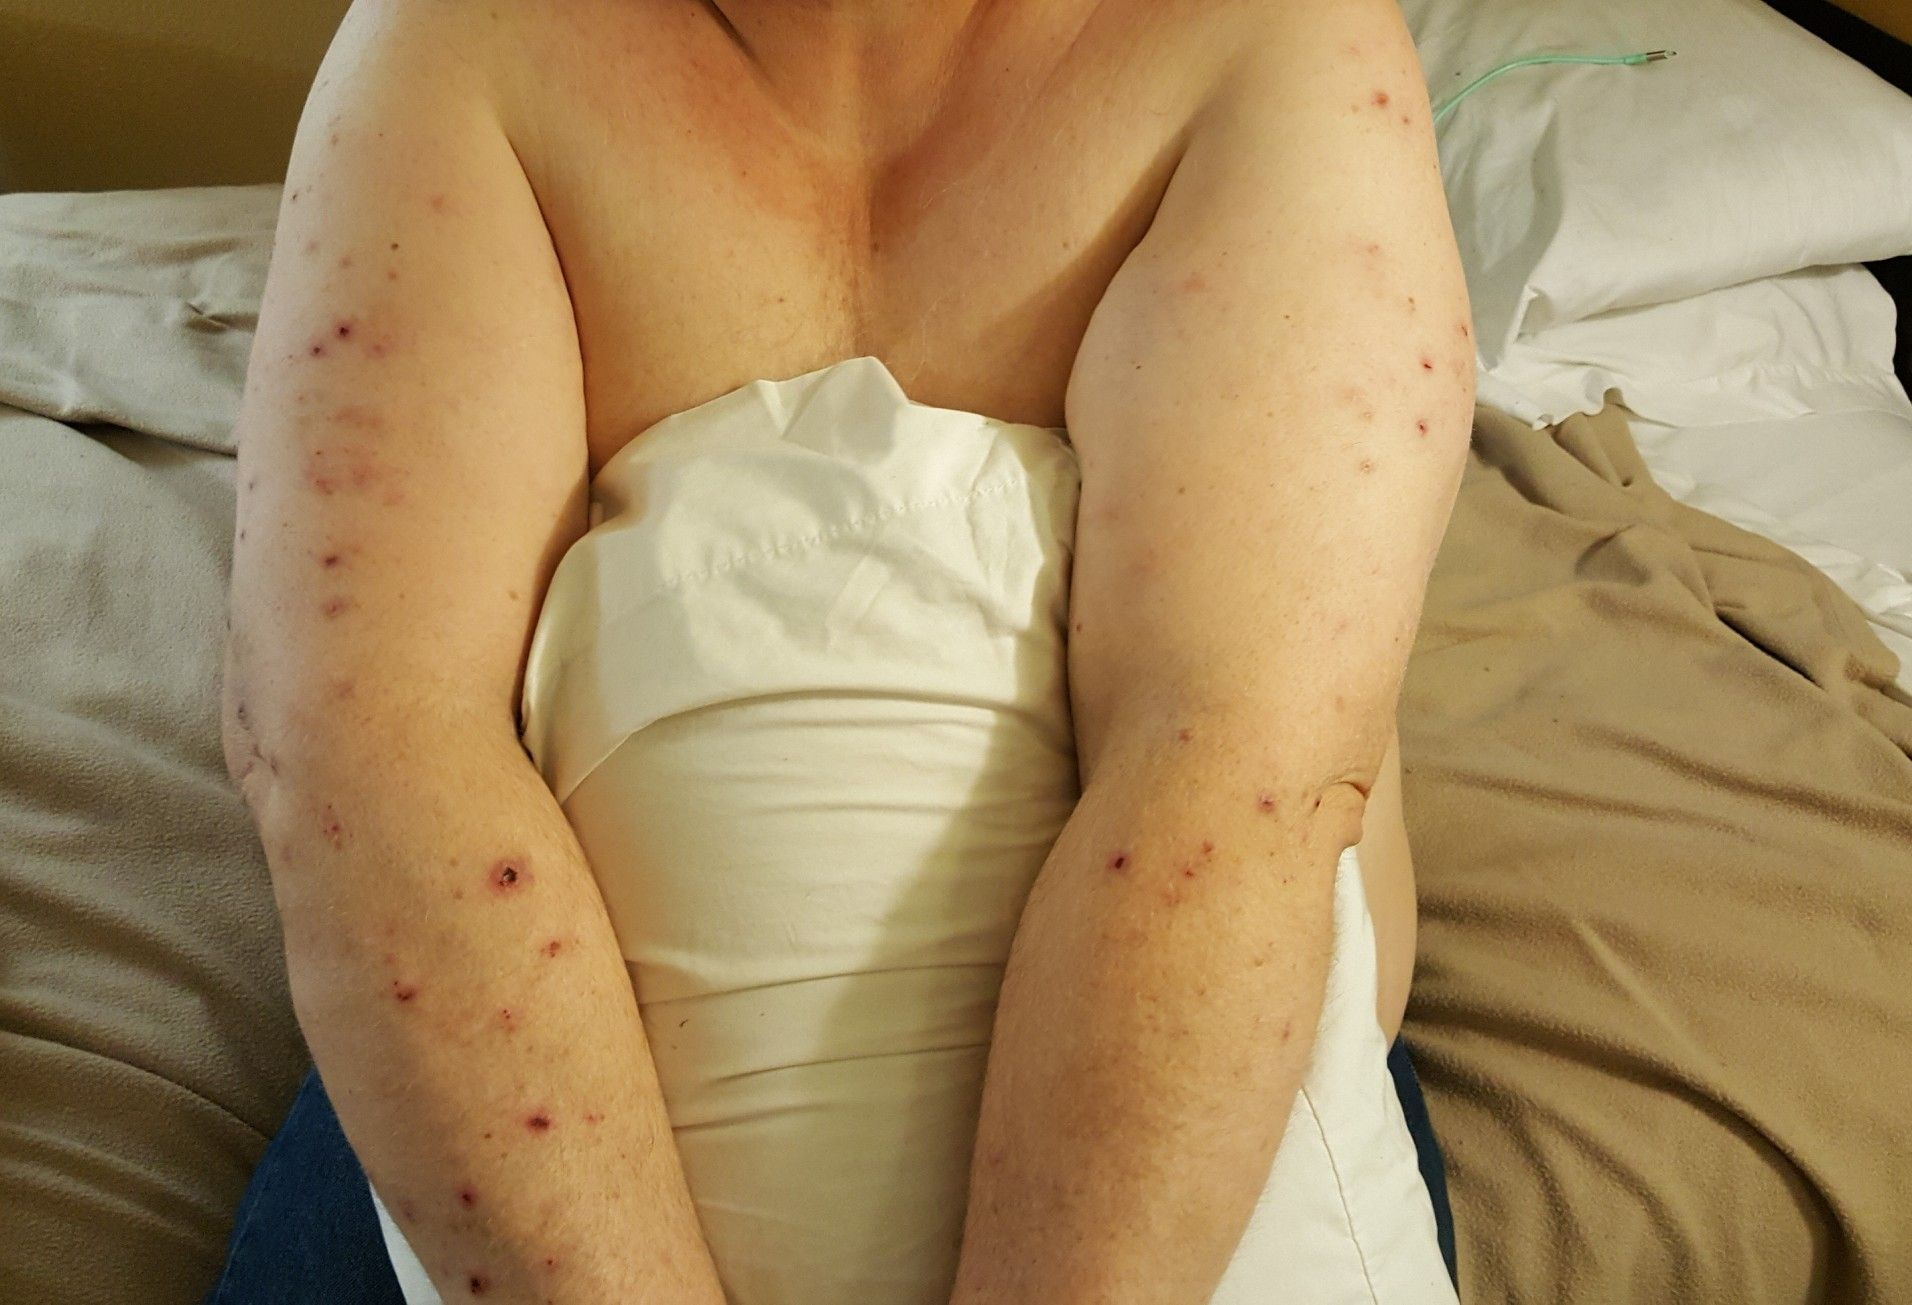 The result of about 7 weeks of bed bug bites. Bed bug